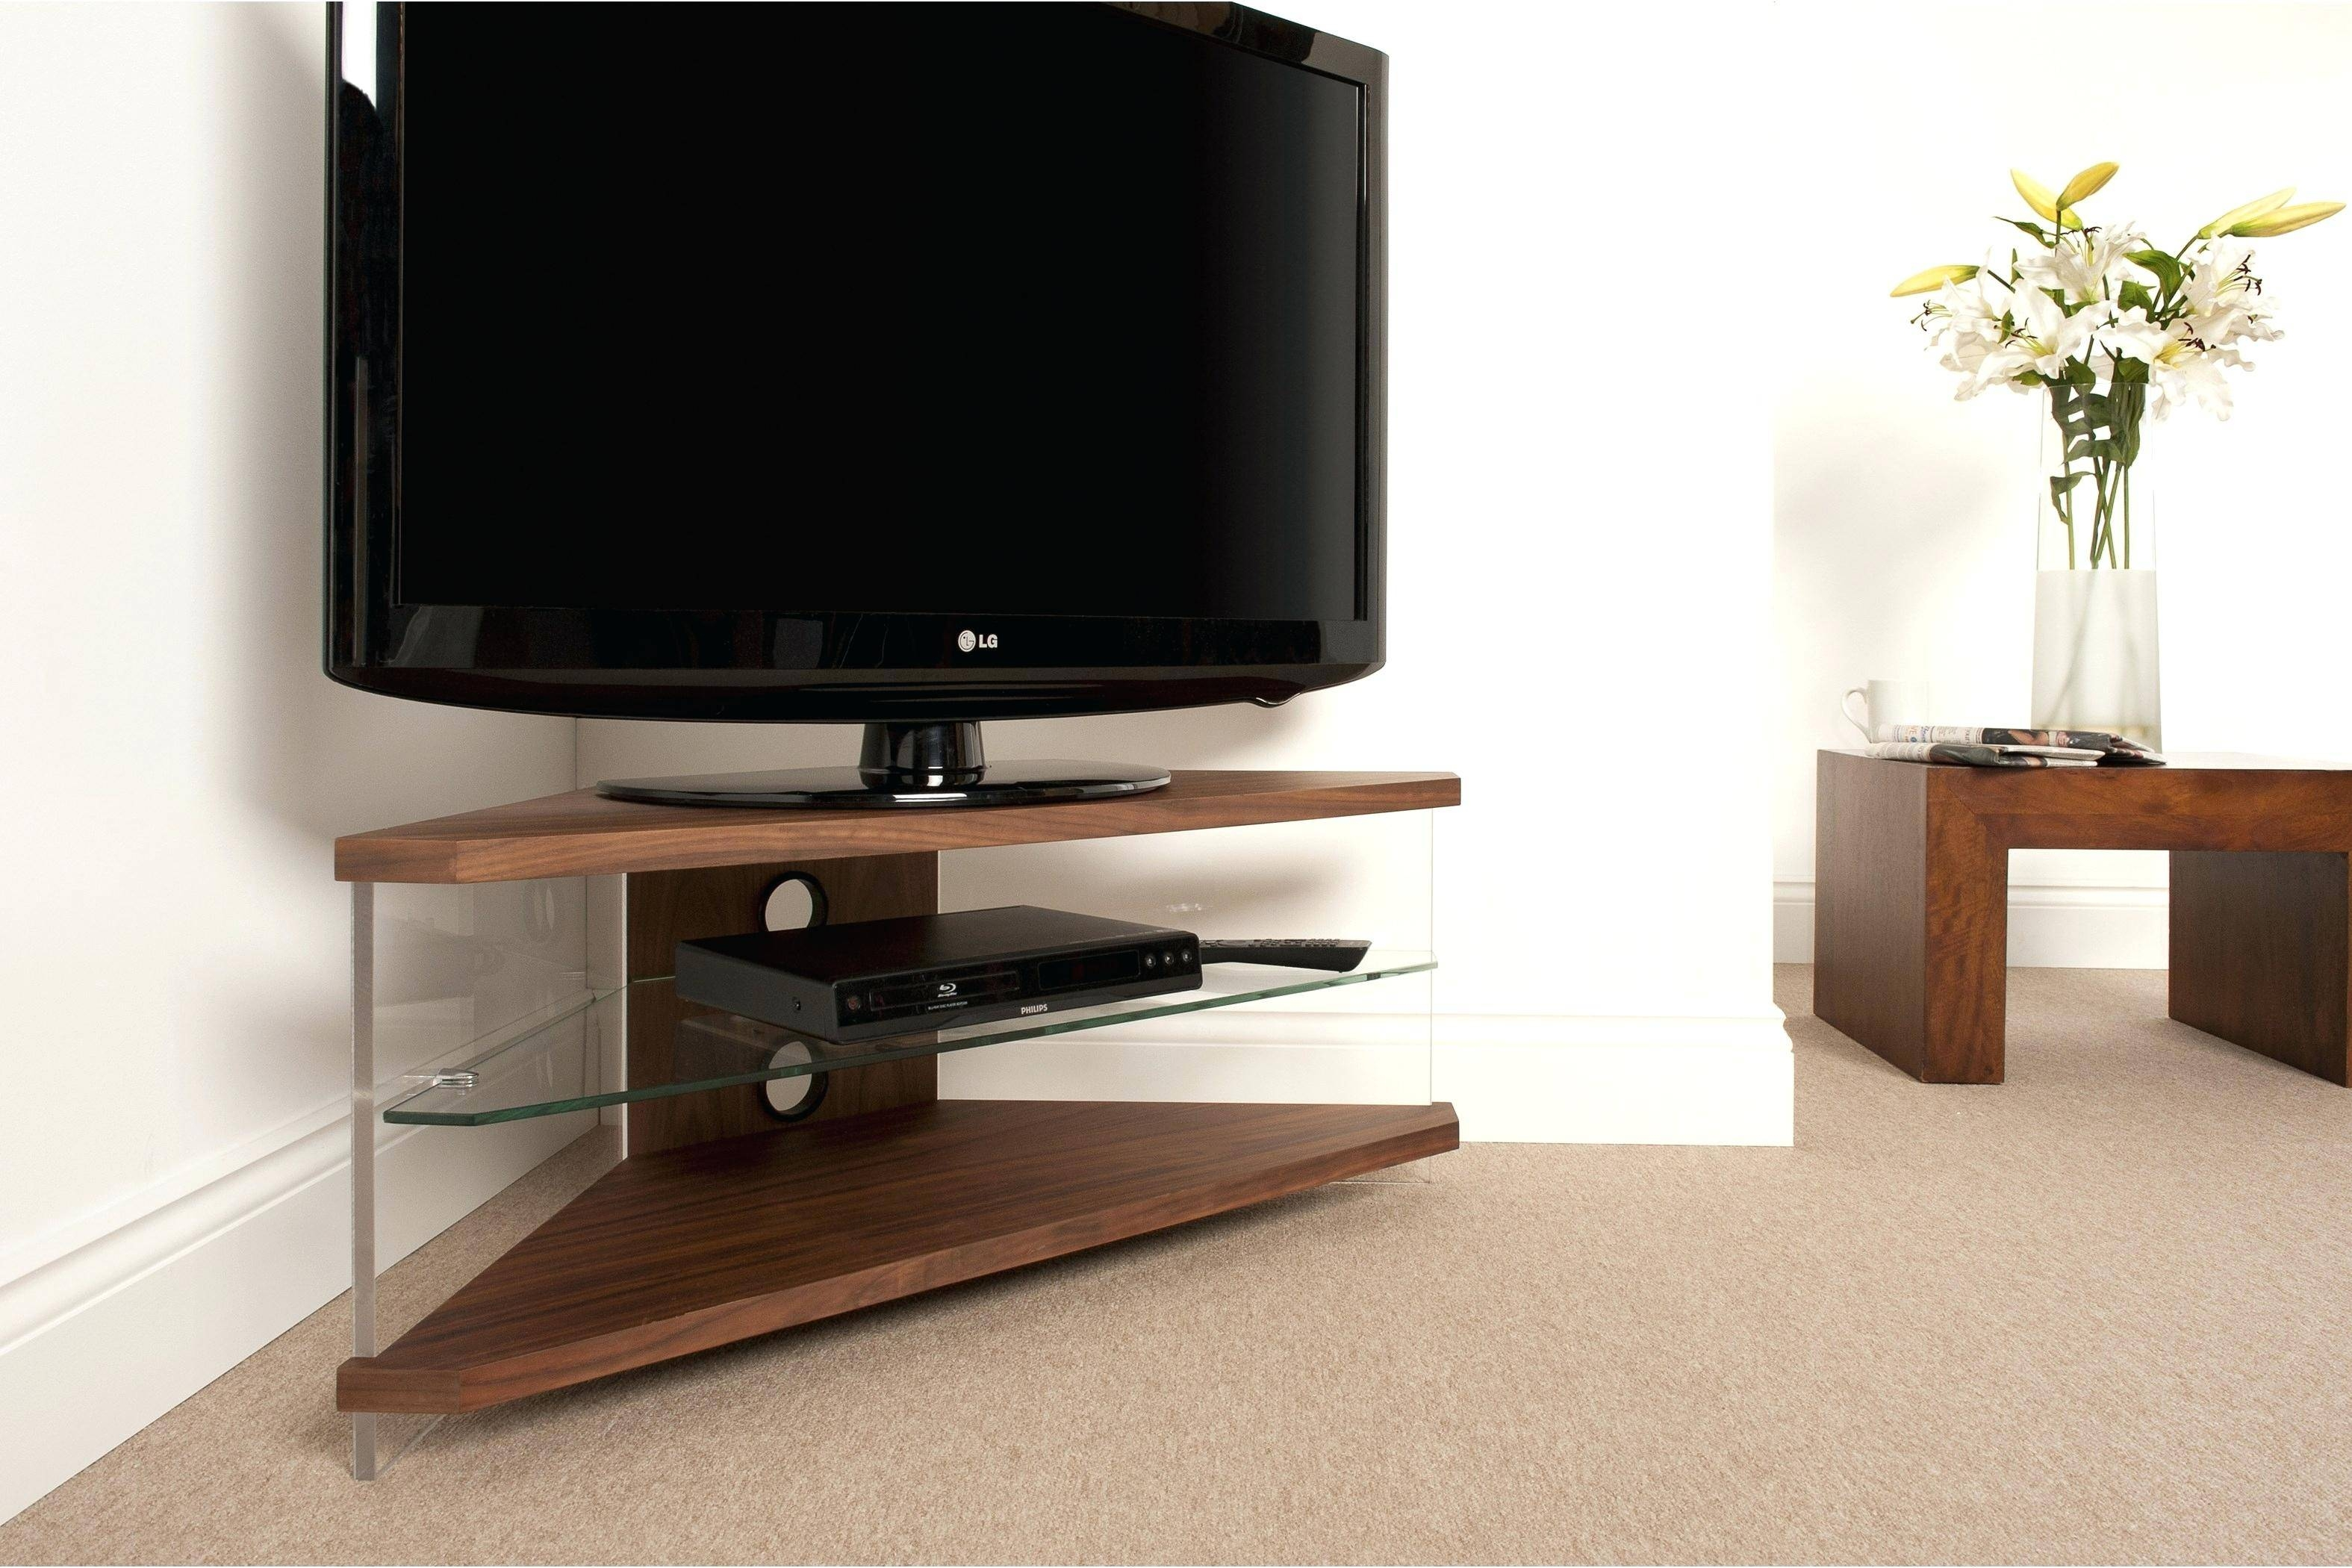 Tv Stand : Outstanding Ax Caligari Modern Oak Grey Gloss Grey regarding Contemporary Corner Tv Stands (Image 14 of 15)